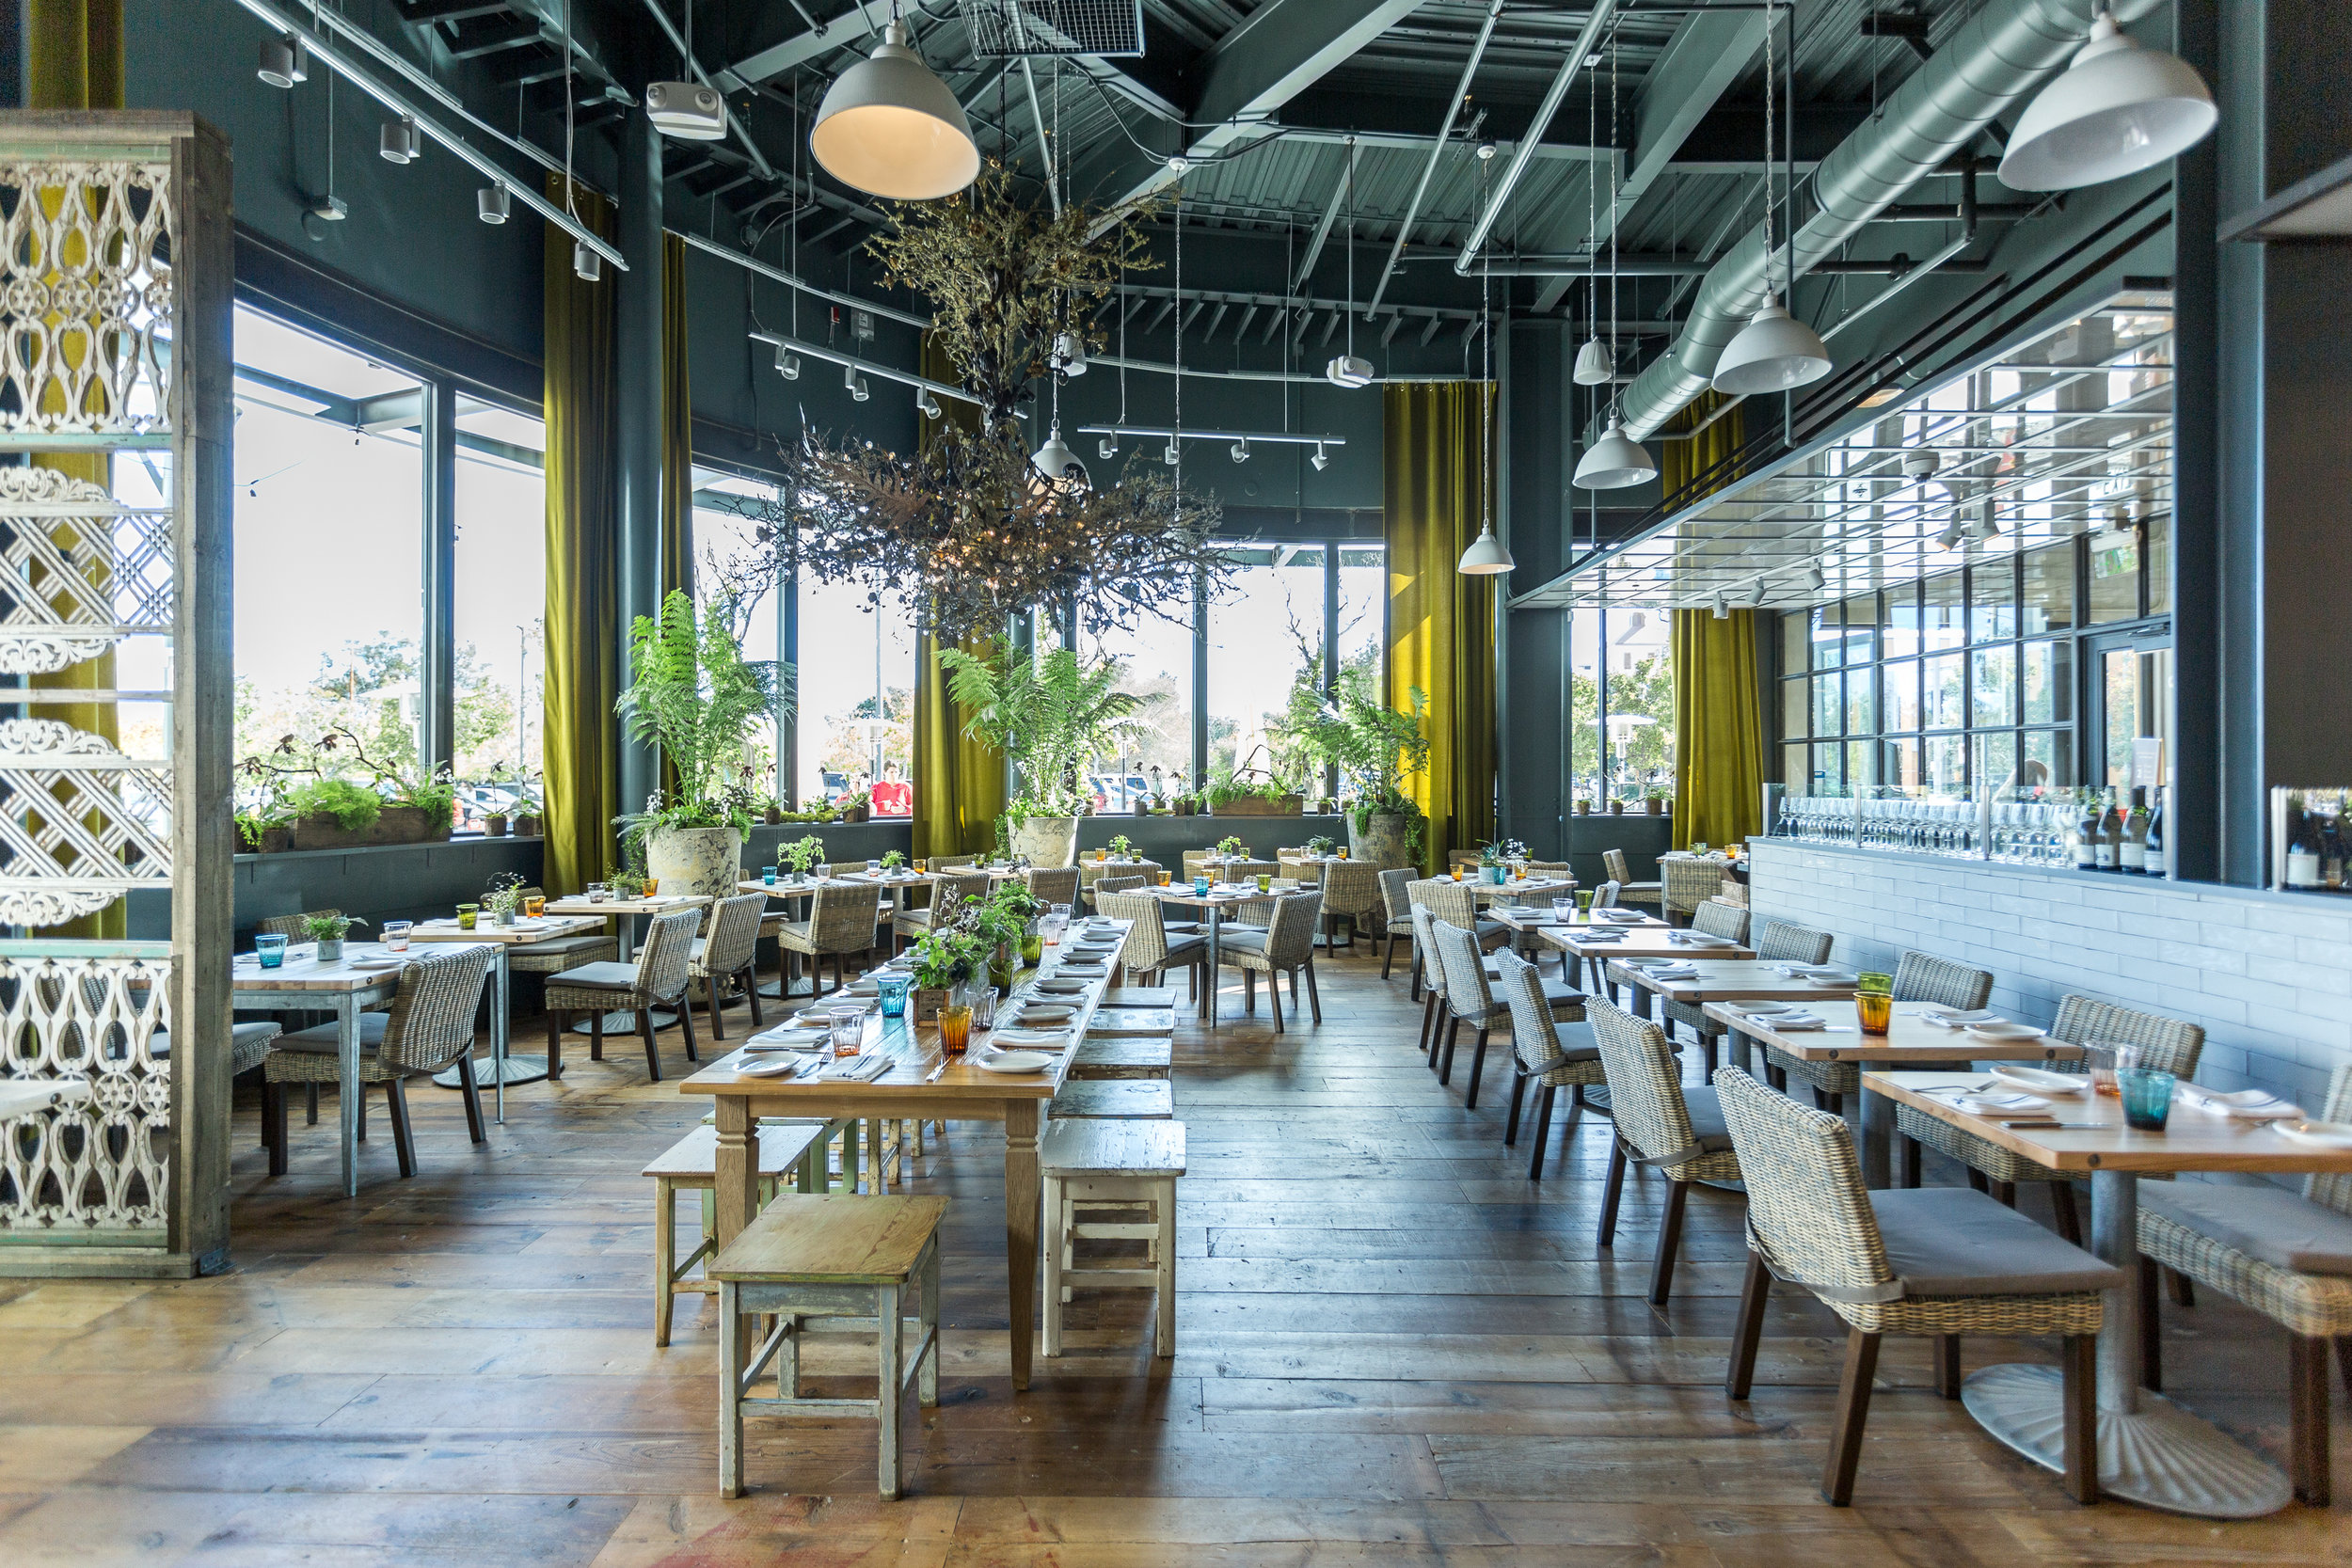 Terrain Opens West Coast Cafe + Outpost in Palo Alto | Design Confetti